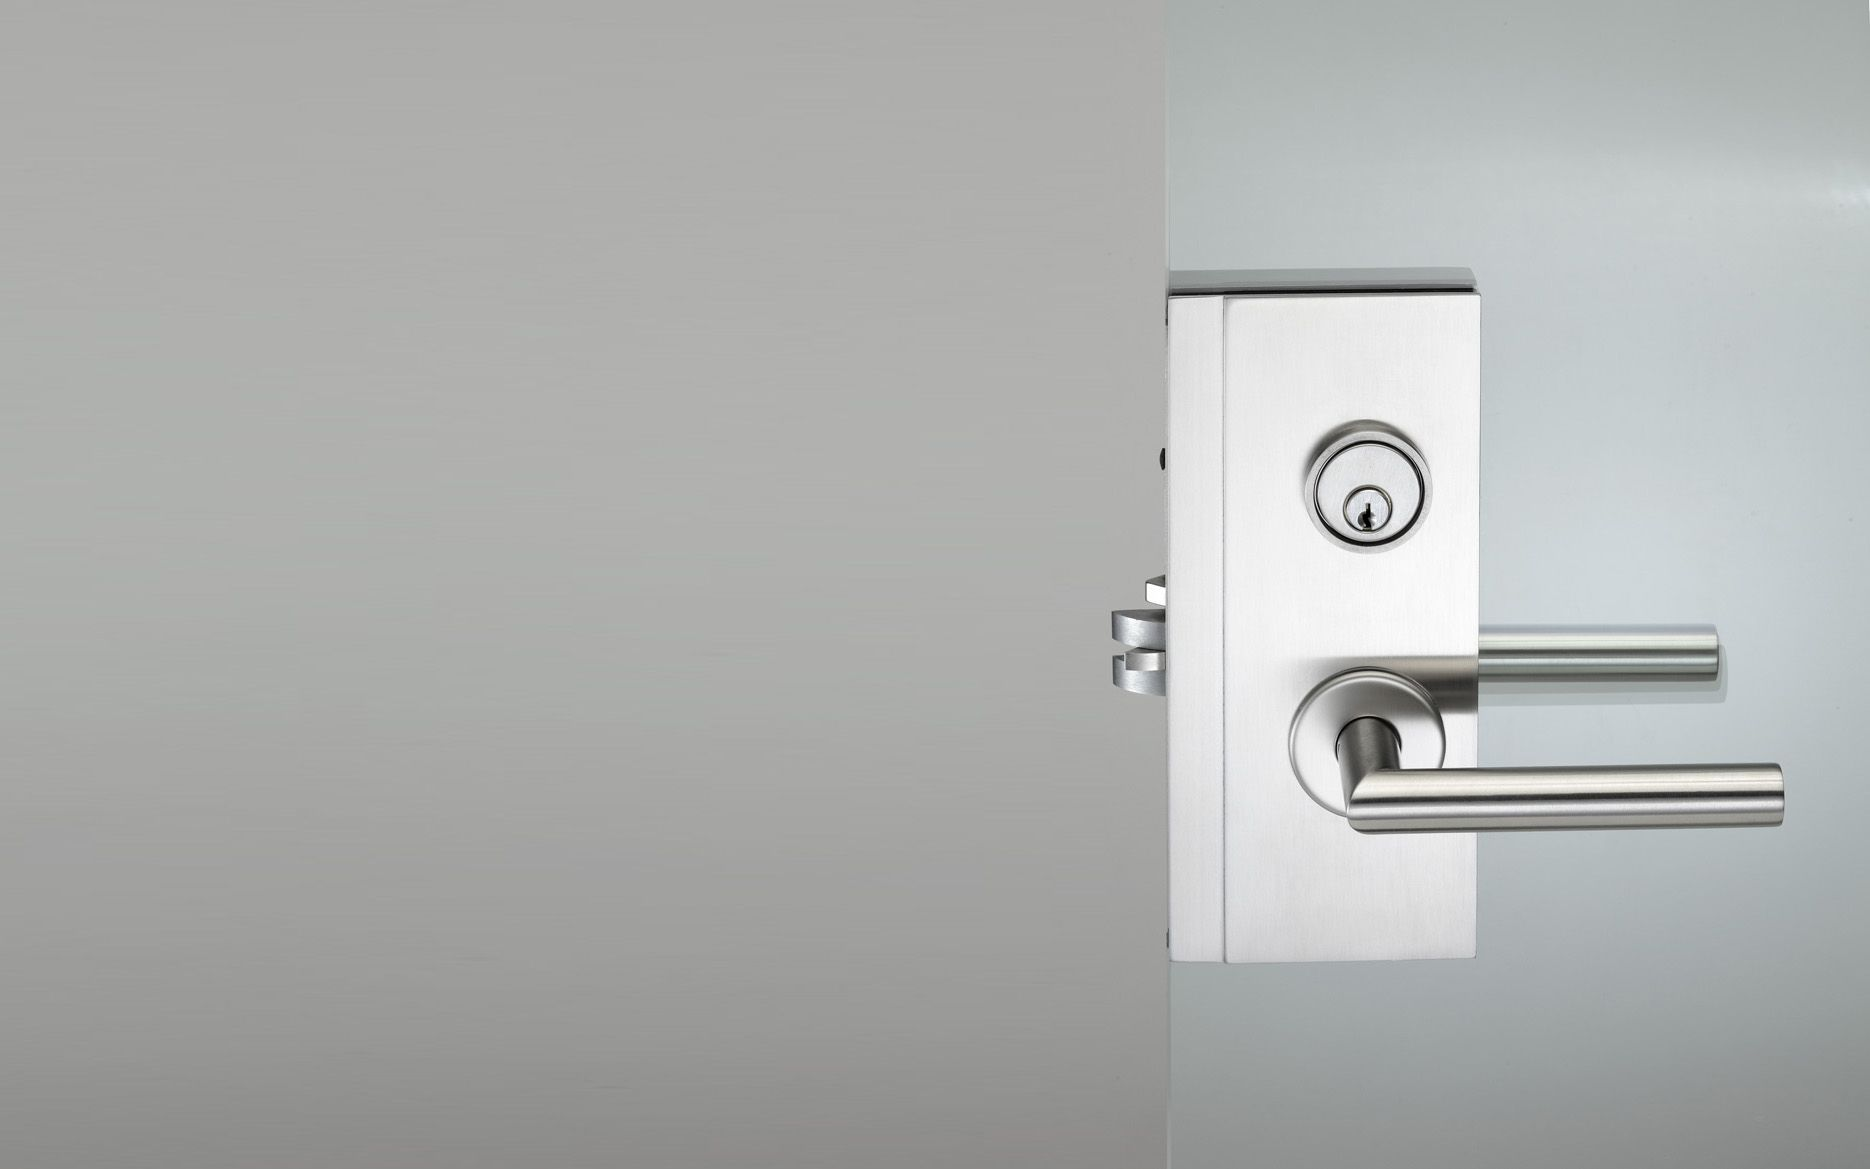 Le Meilleur Pba Stainless Steel Mortise Lock Case For Glass Doors Ce Mois Ci